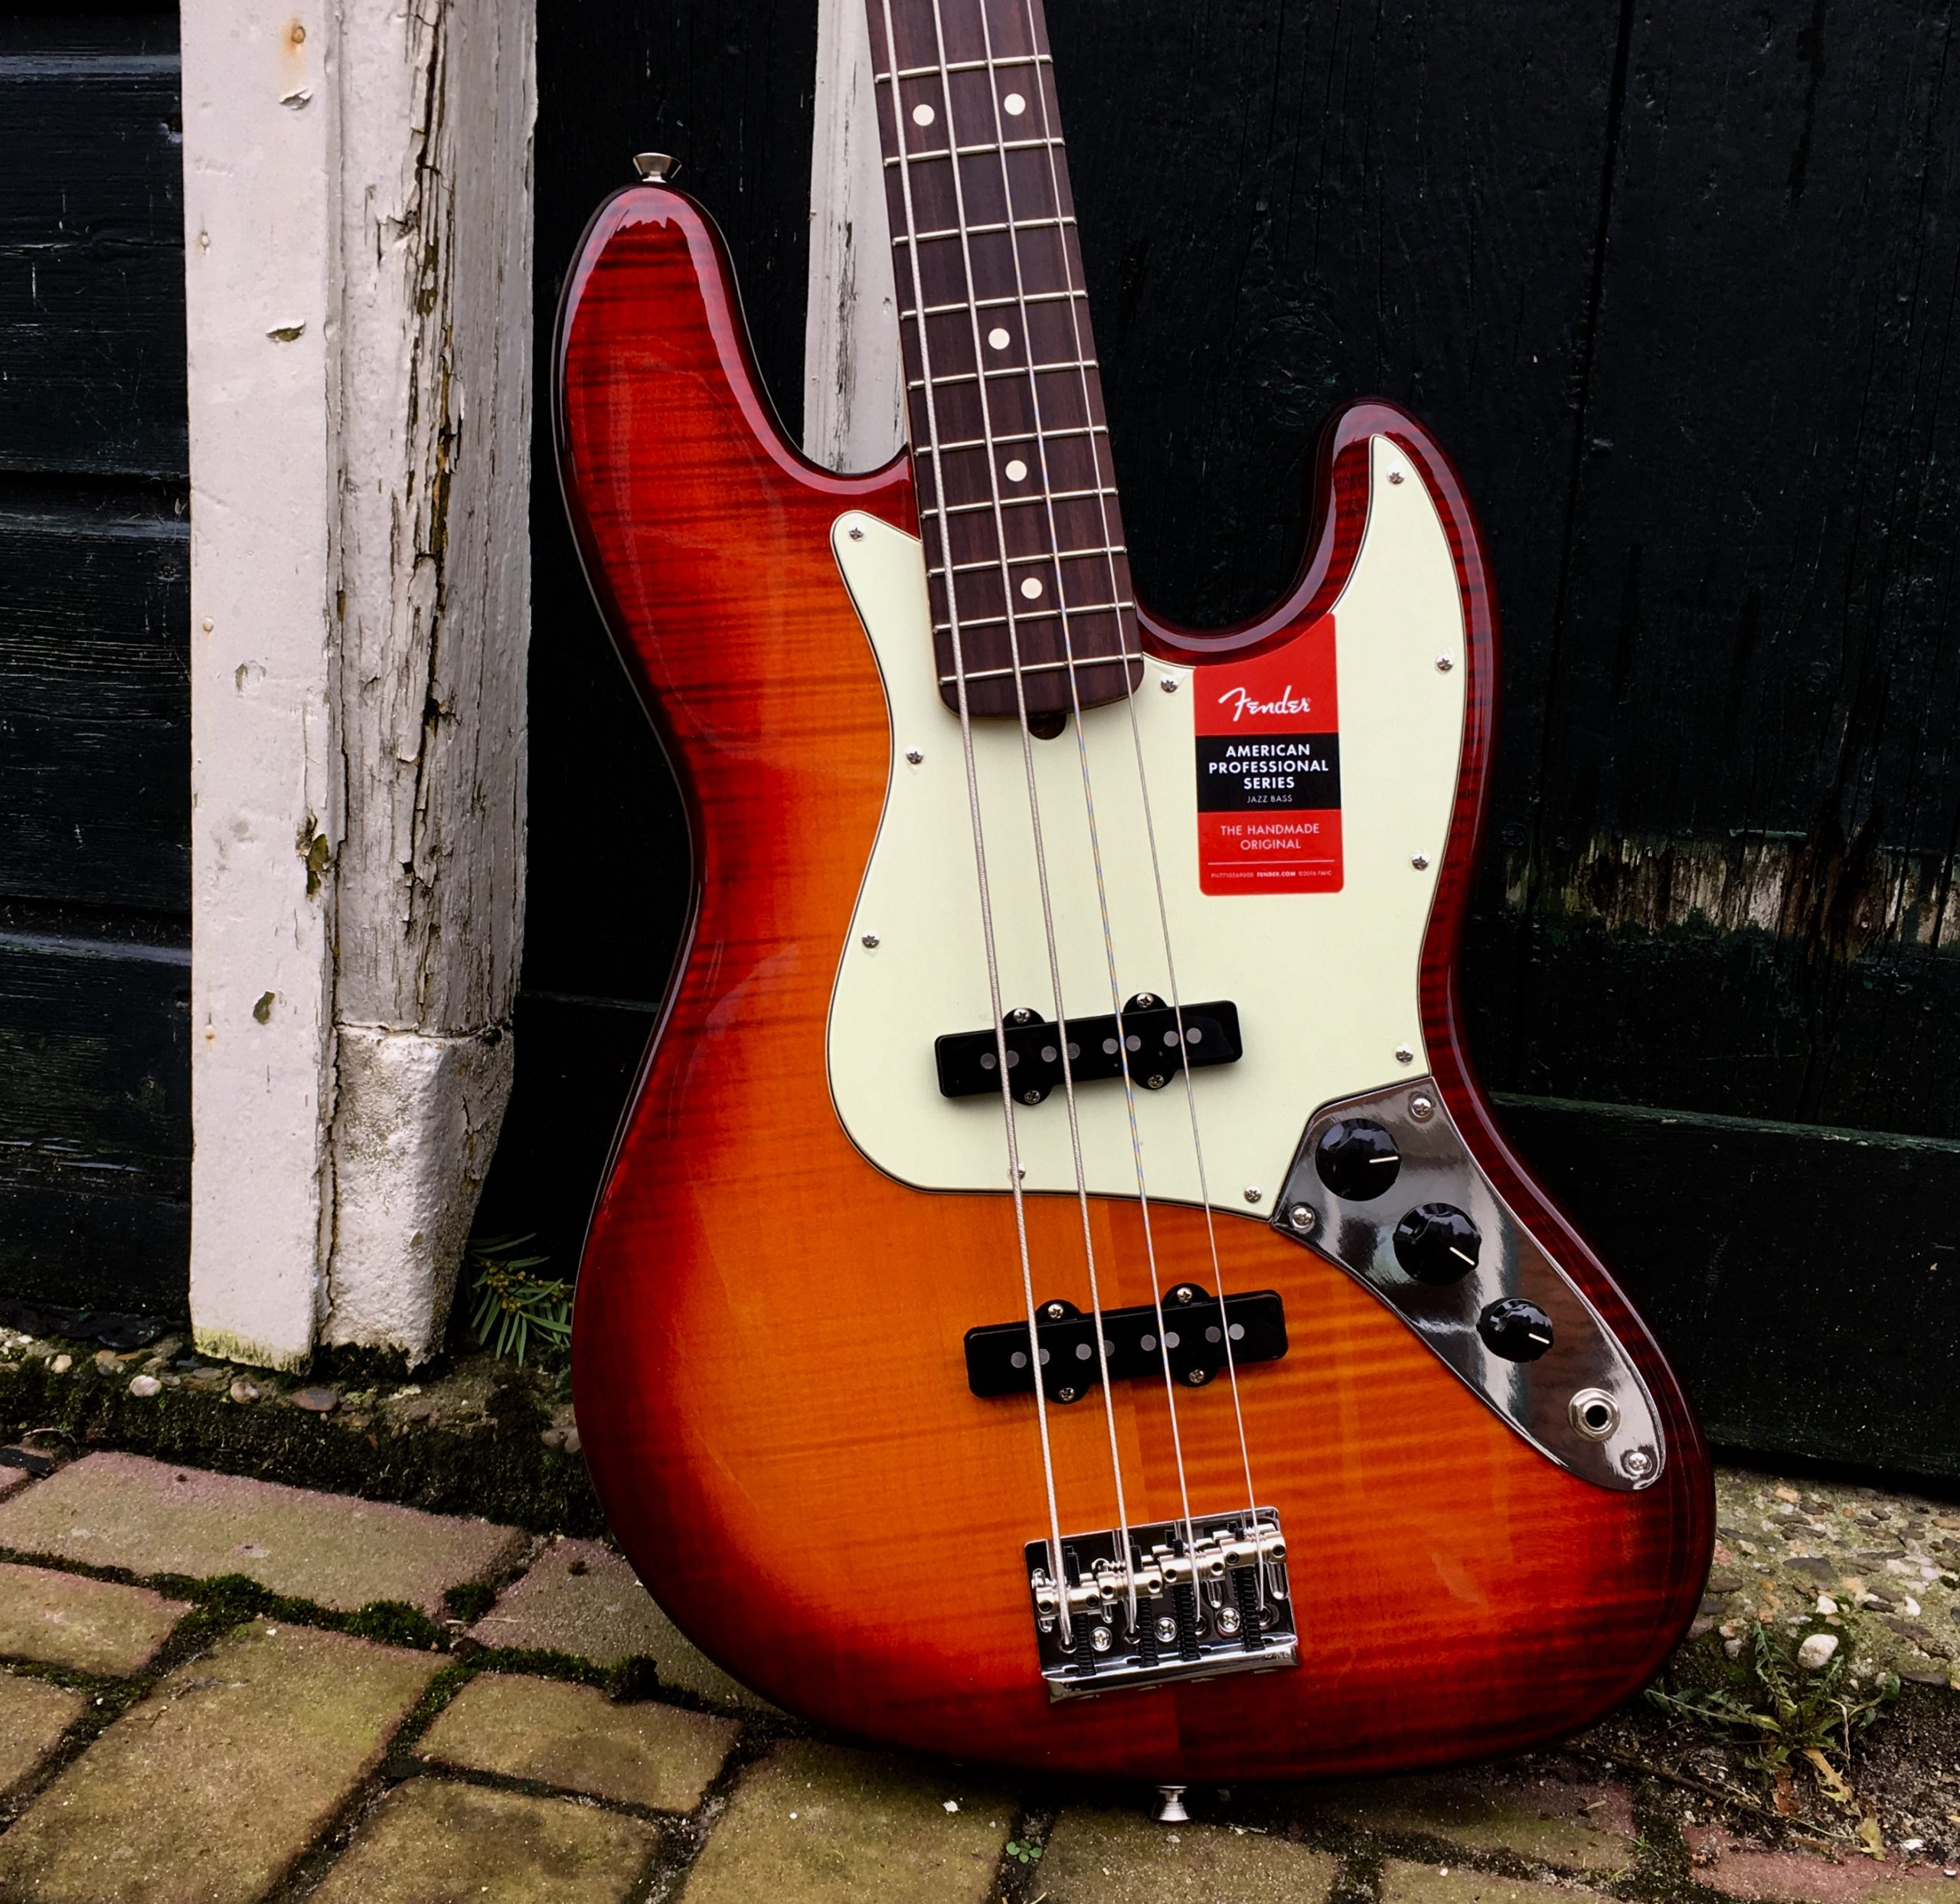 Fender American Pro Jazz Bass Flame Maple Top  - Limited Edition